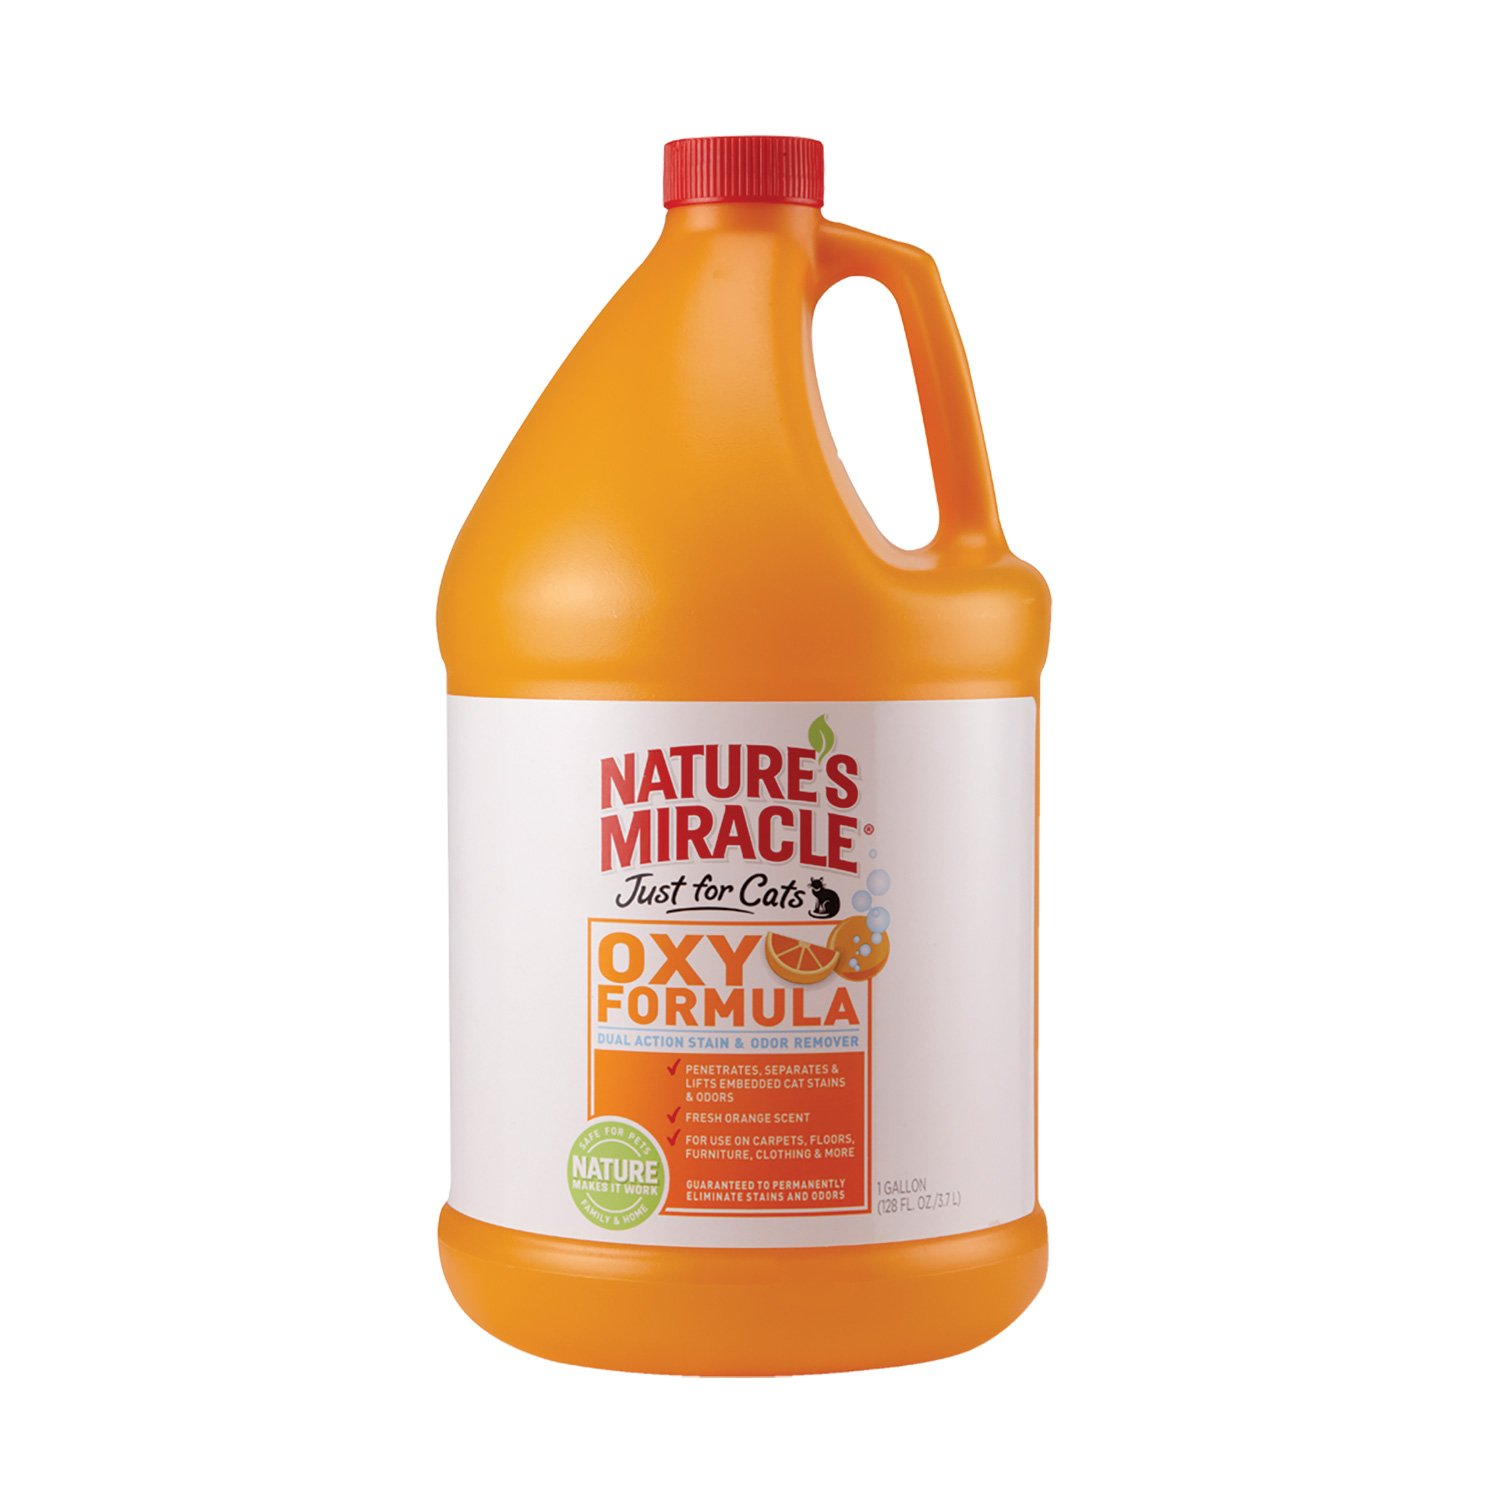 Nature's Miracle Just For Cats Orange Oxy Stain & Odor Remover, Gallon (5705) by Nature's Miracle